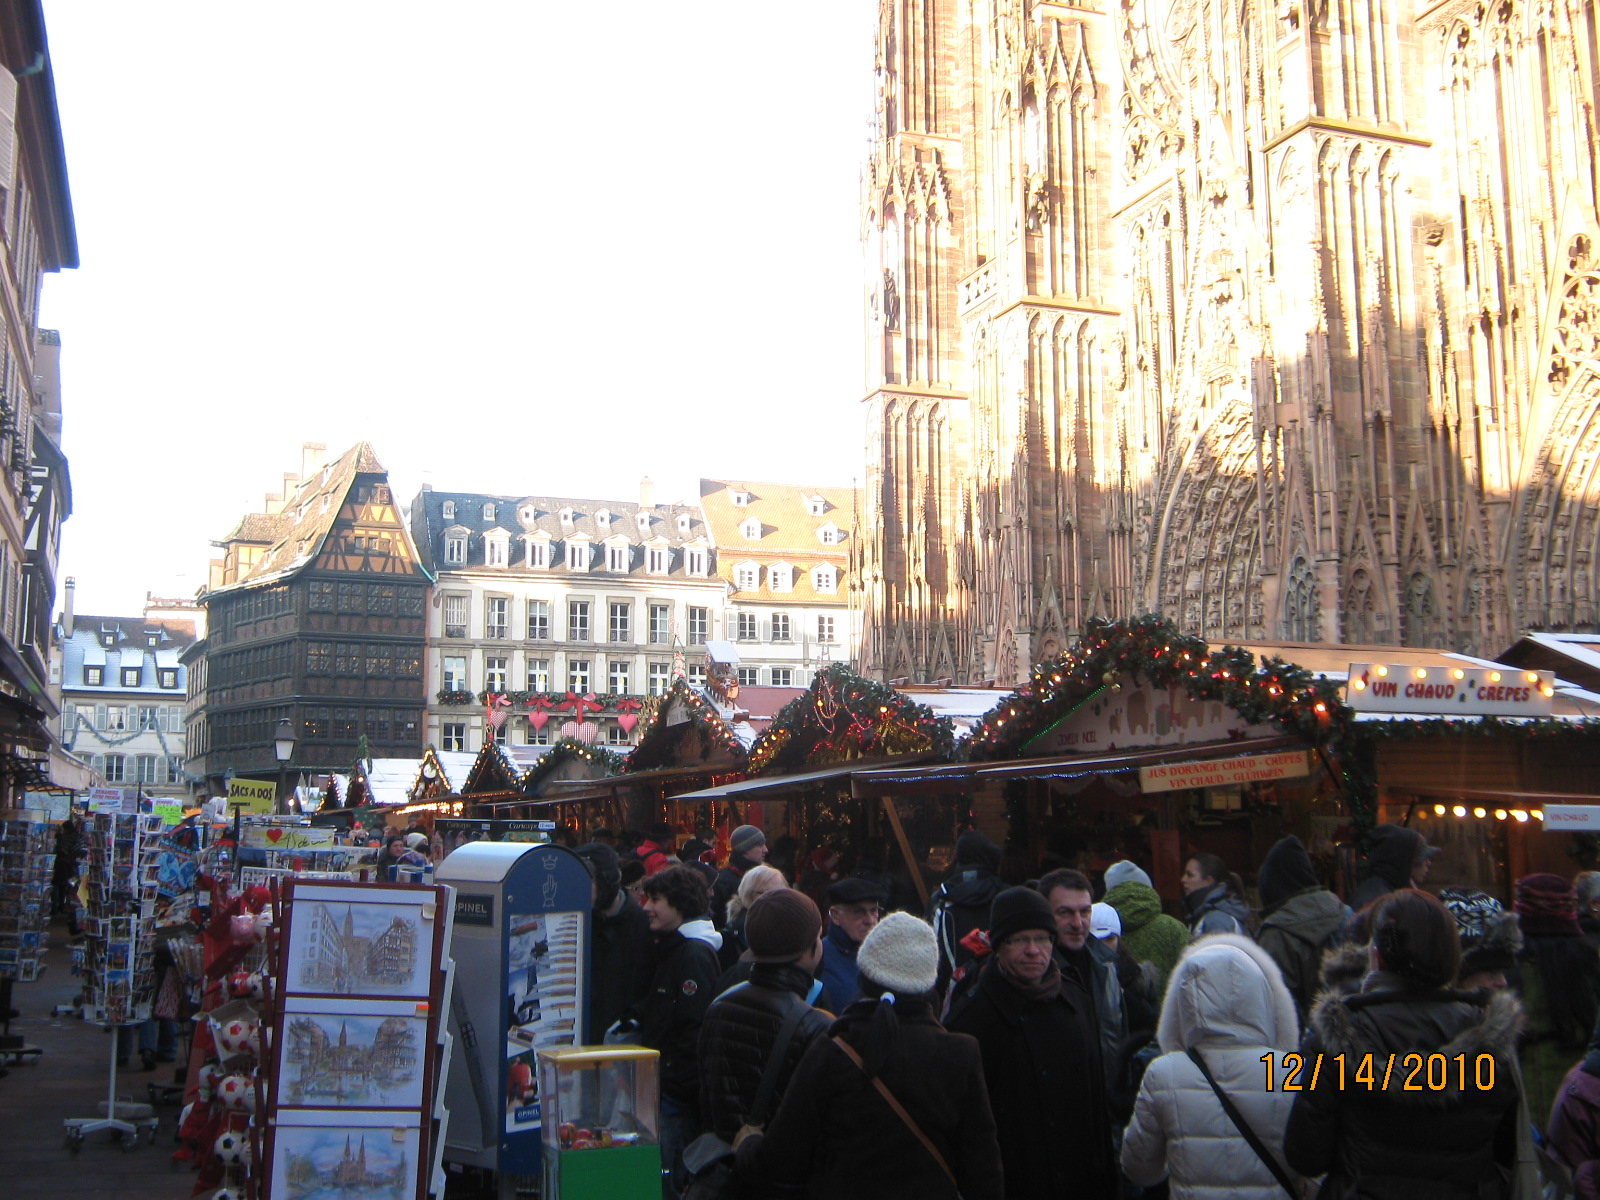 ratsrunthistown strasbourg christmas market 2010. Black Bedroom Furniture Sets. Home Design Ideas